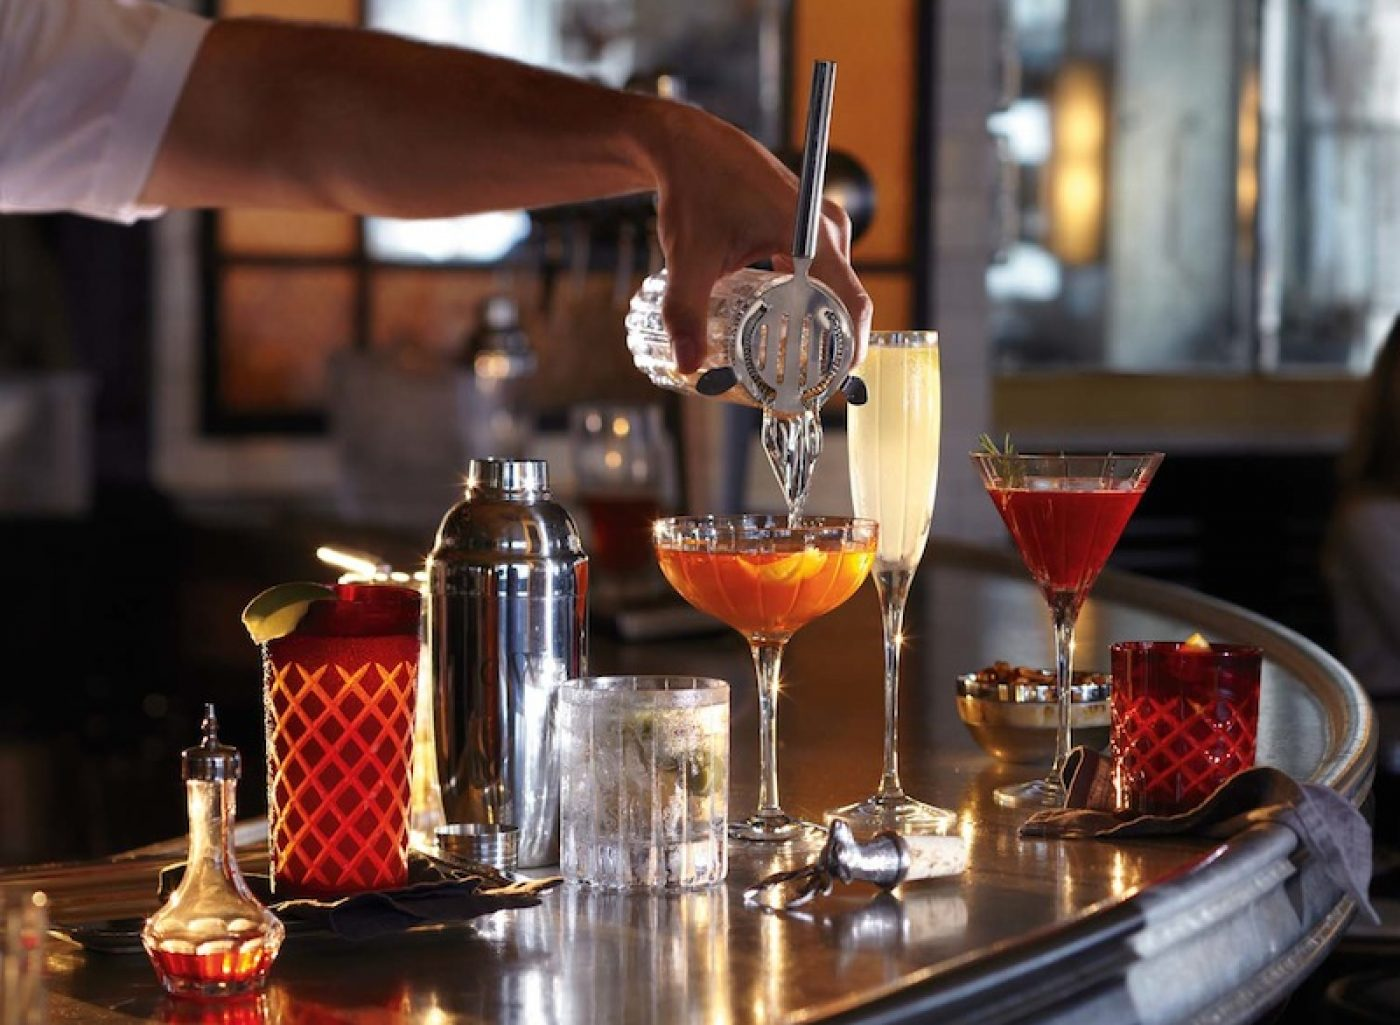 The Art of Bartending/Mixology